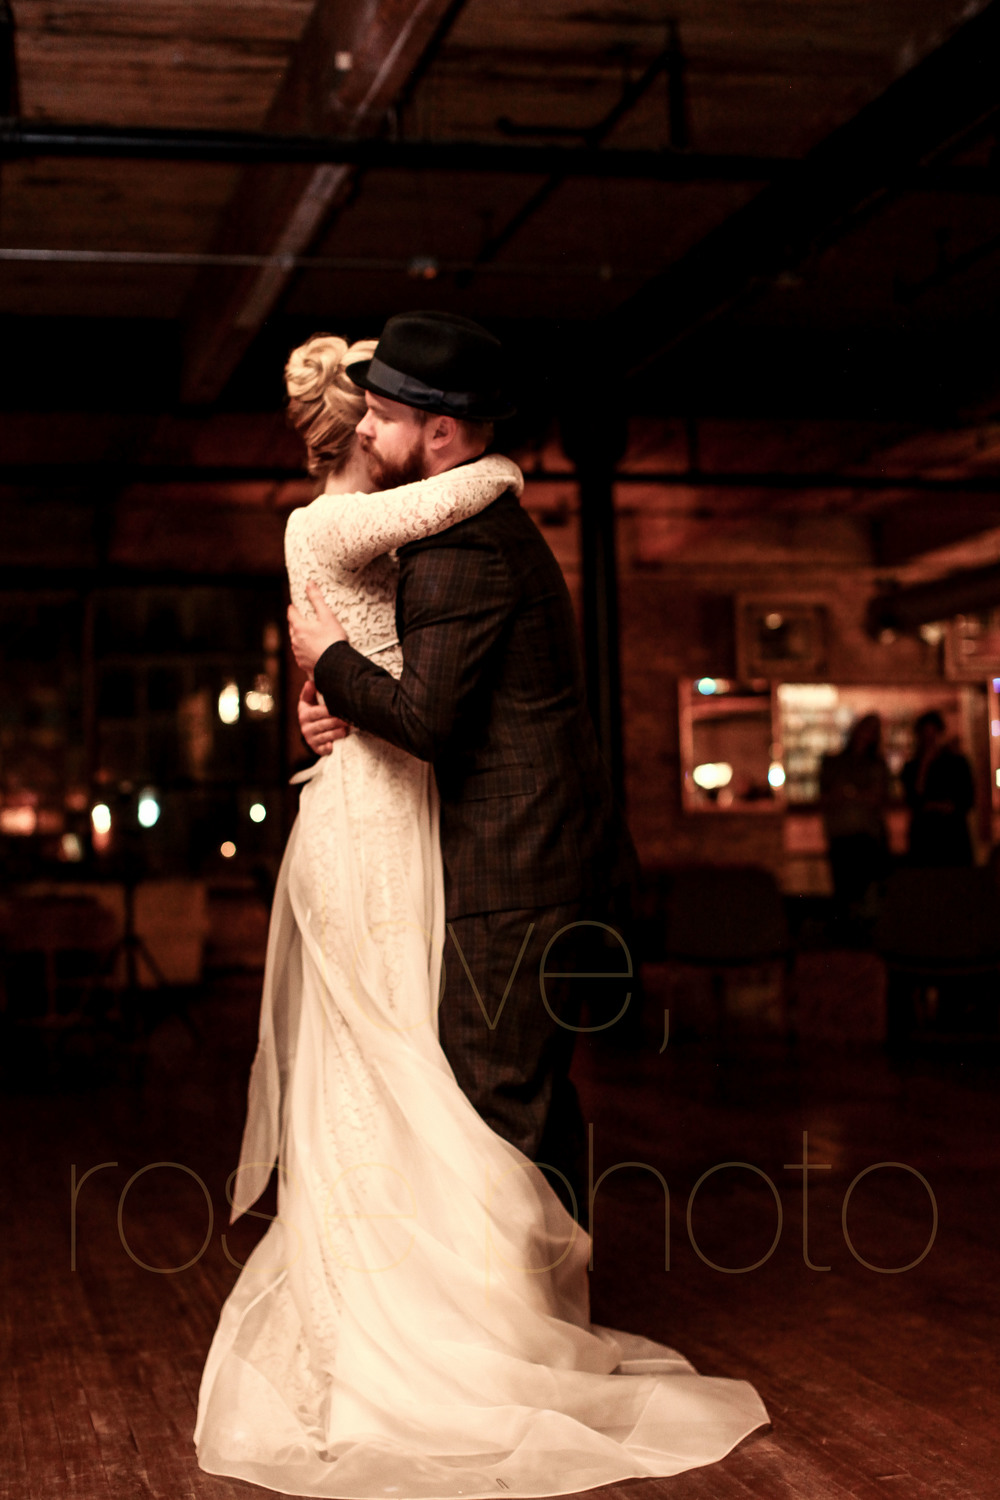 West Fulton Chicago Wedding Venue Salvage One photography enagement photos bride groom first dance-33.jpg